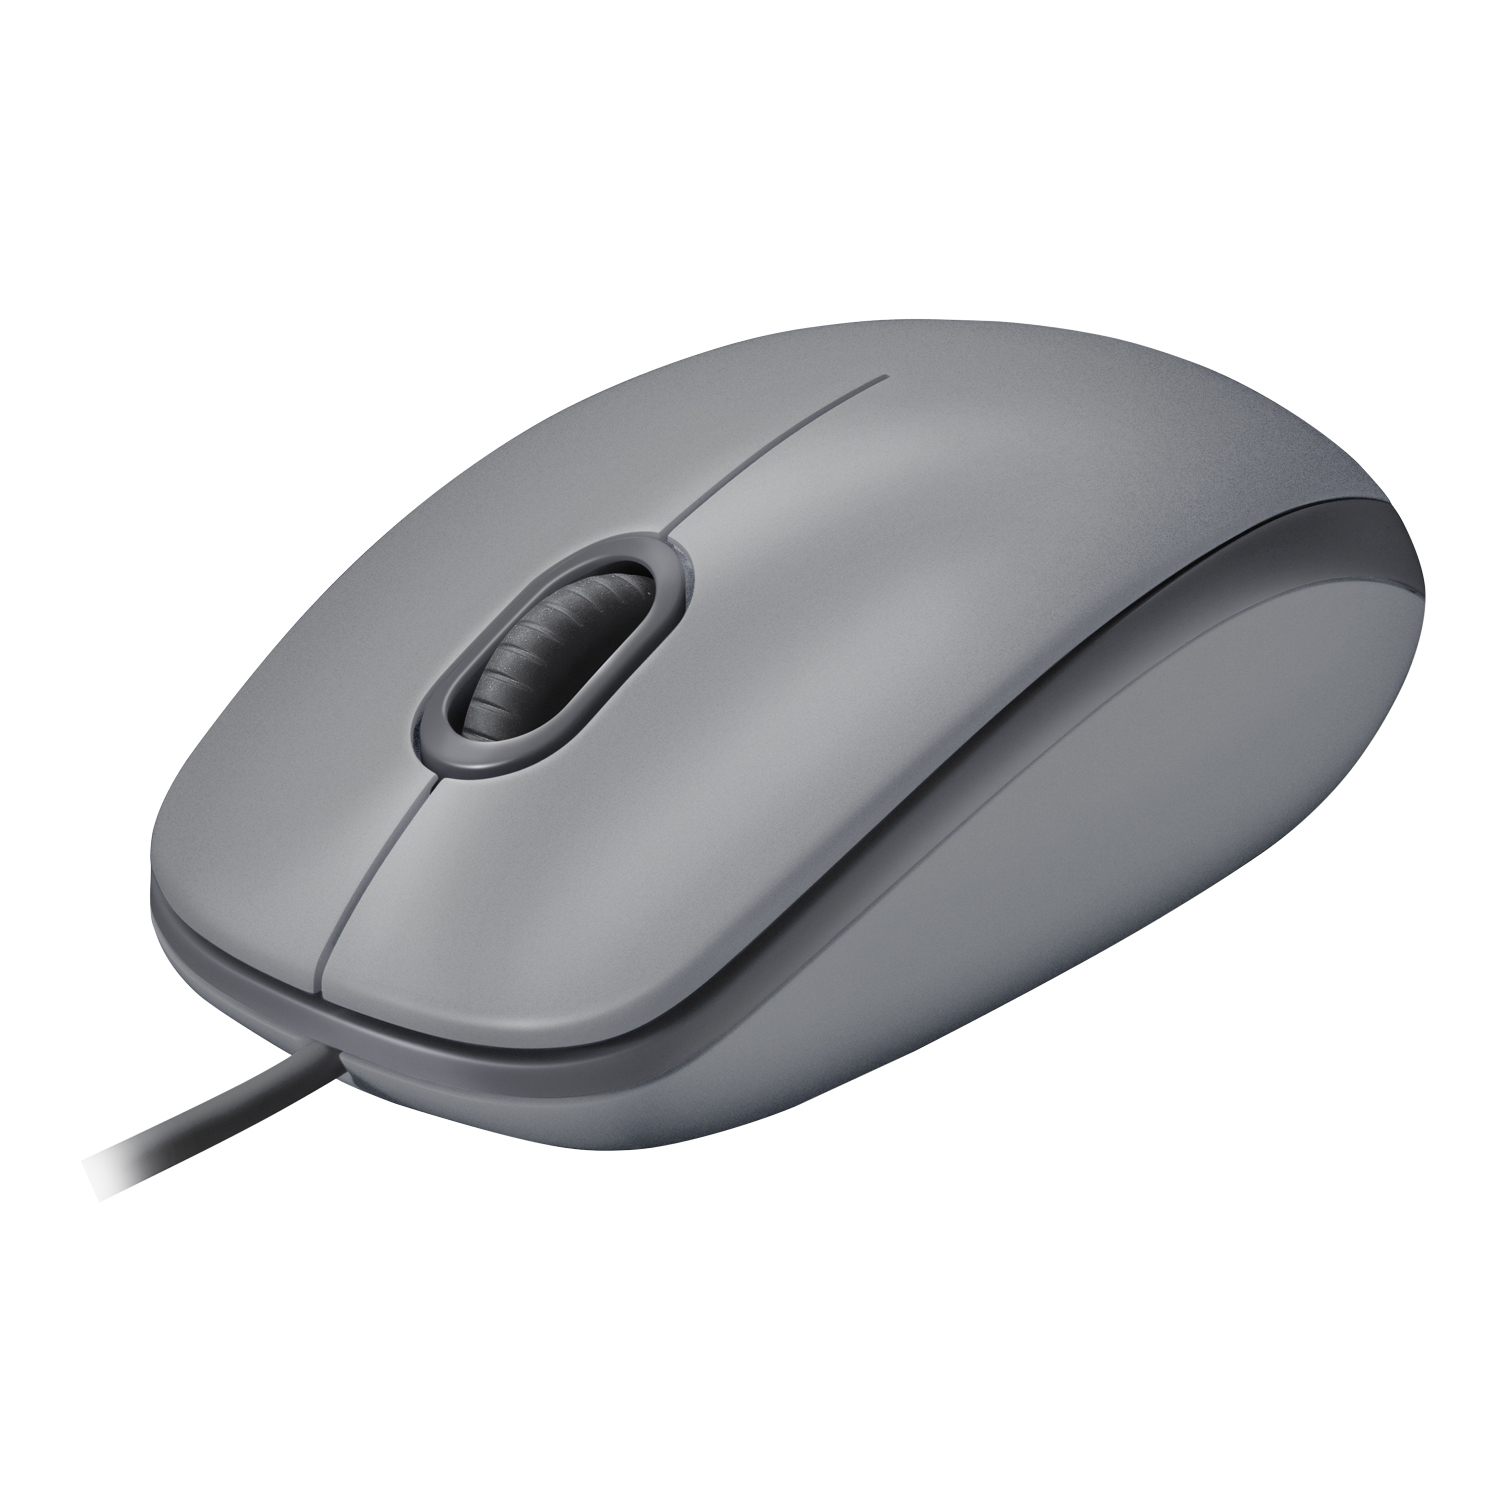 LOGITECH 910-005490 M110 MICE USB OPTICAL 1000 DPI AMBIDEXTROUS GREY